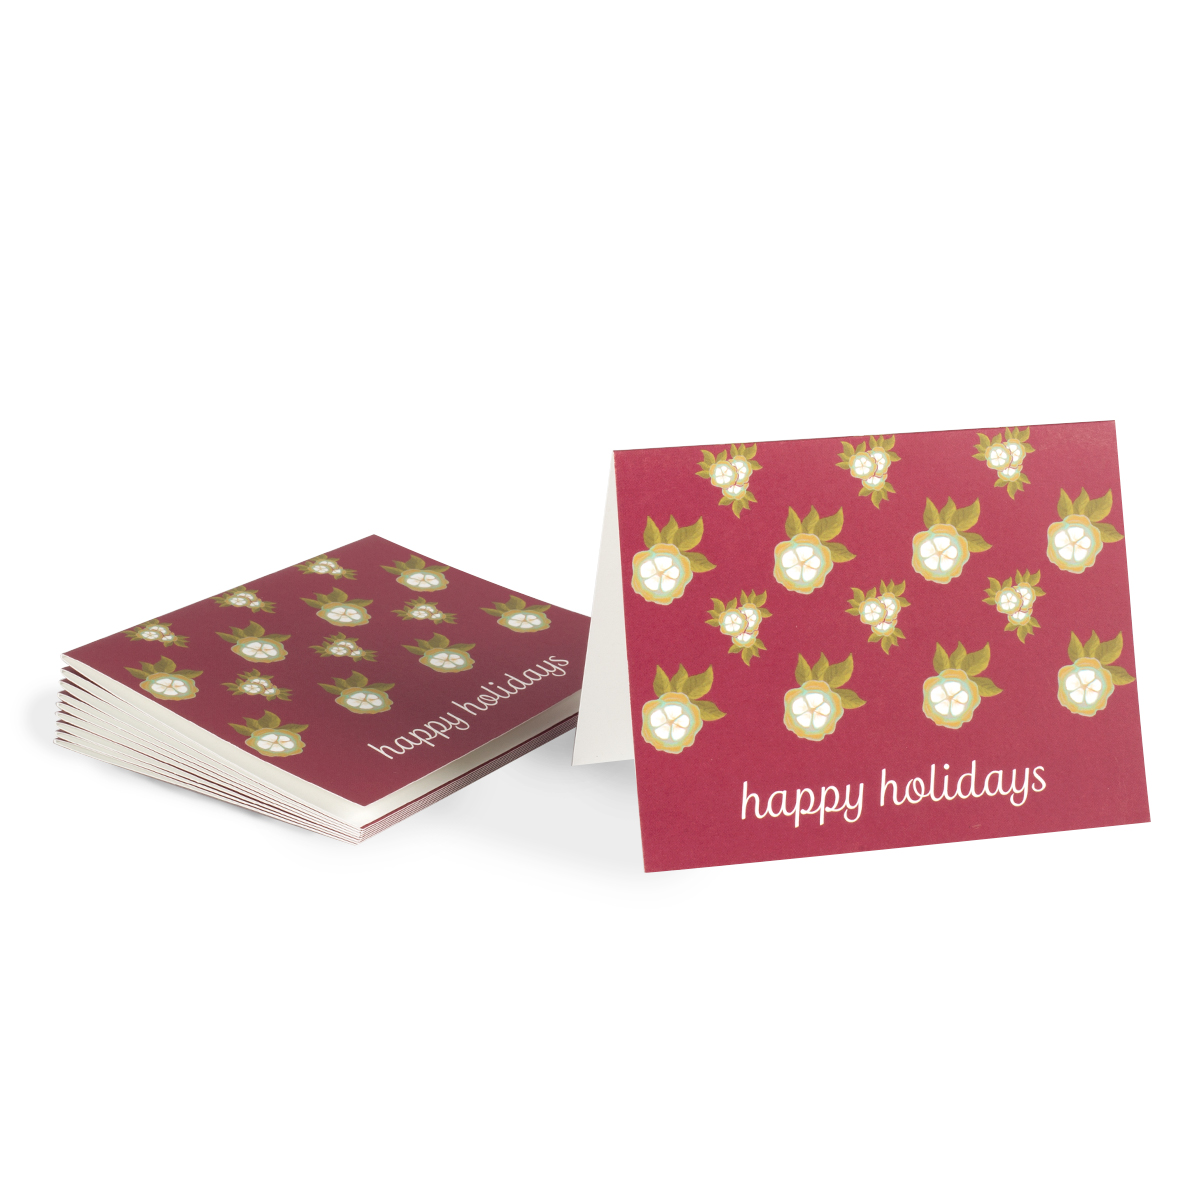 ONE Holiday Card